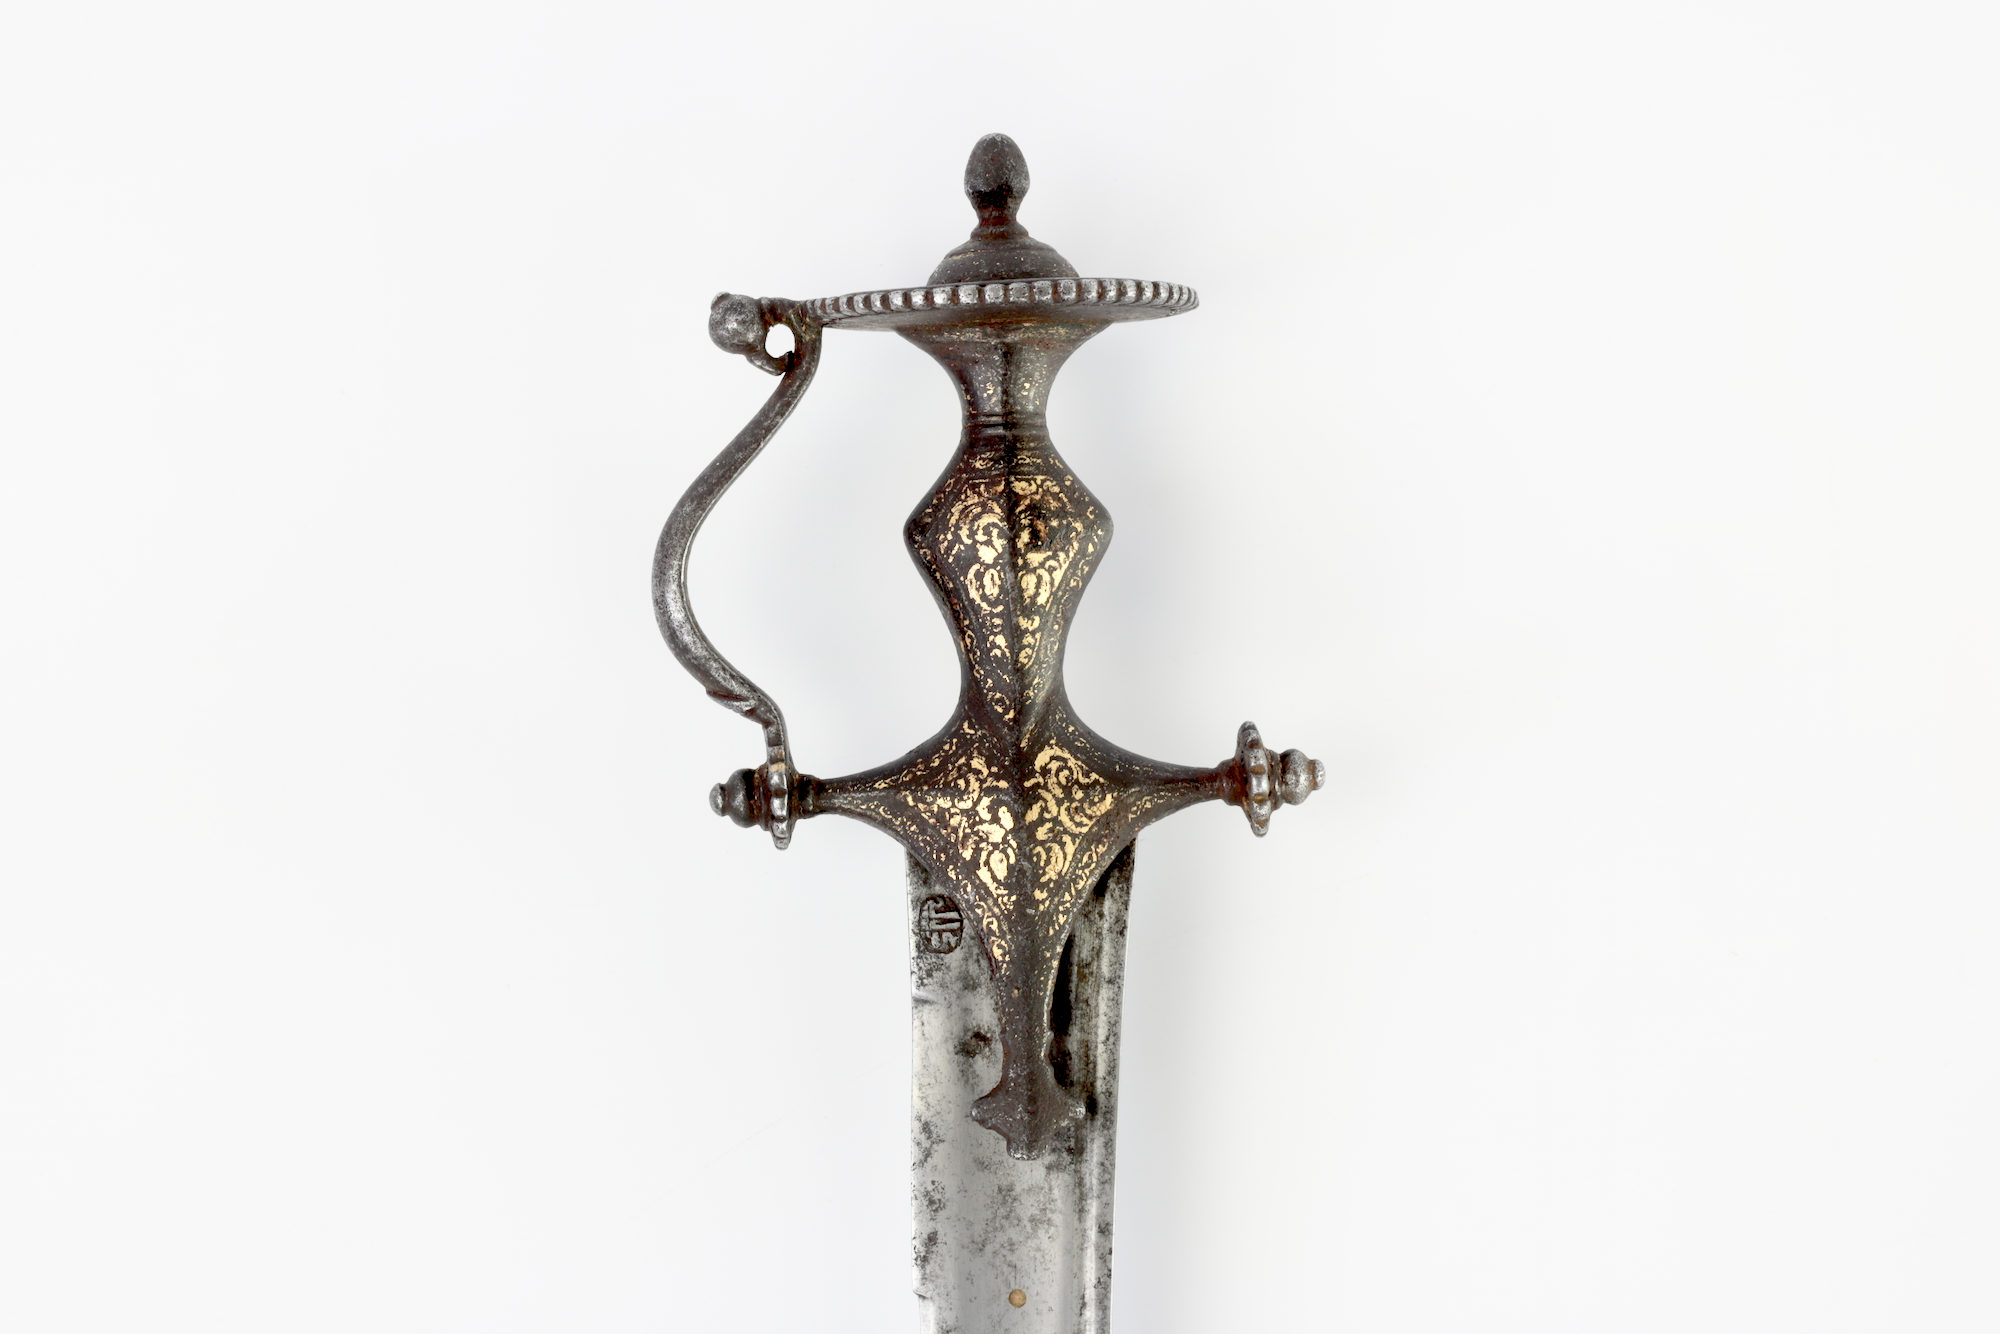 Talwar with southern style hilt